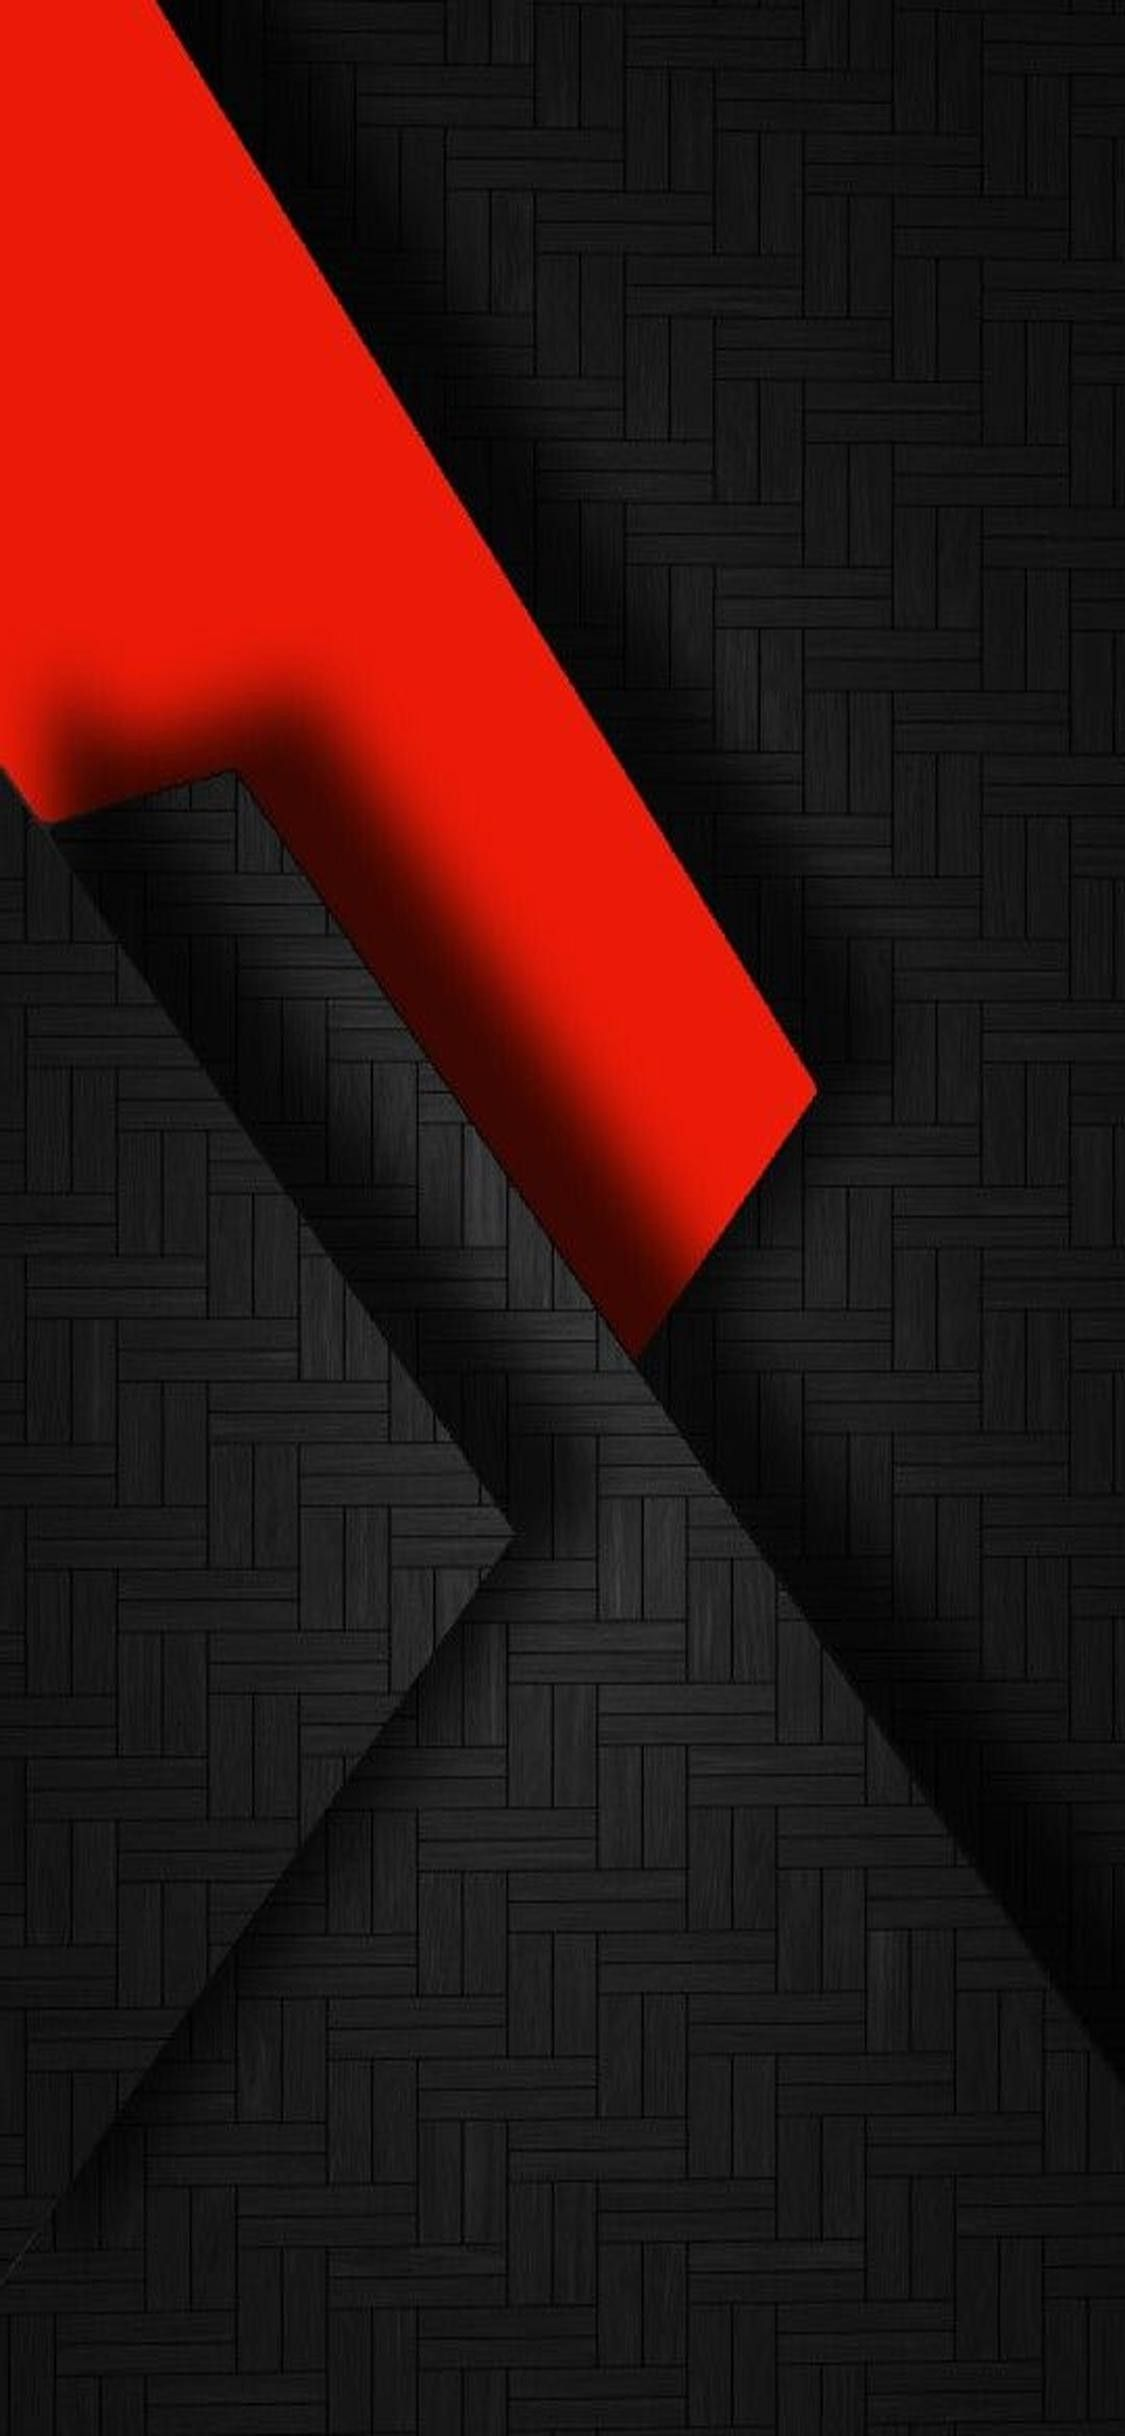 Iphone Xr Wallpaper 4k Red Mywallpapers Site Iphone Wallpaper Iphone 7 Wallpapers Android Wallpaper